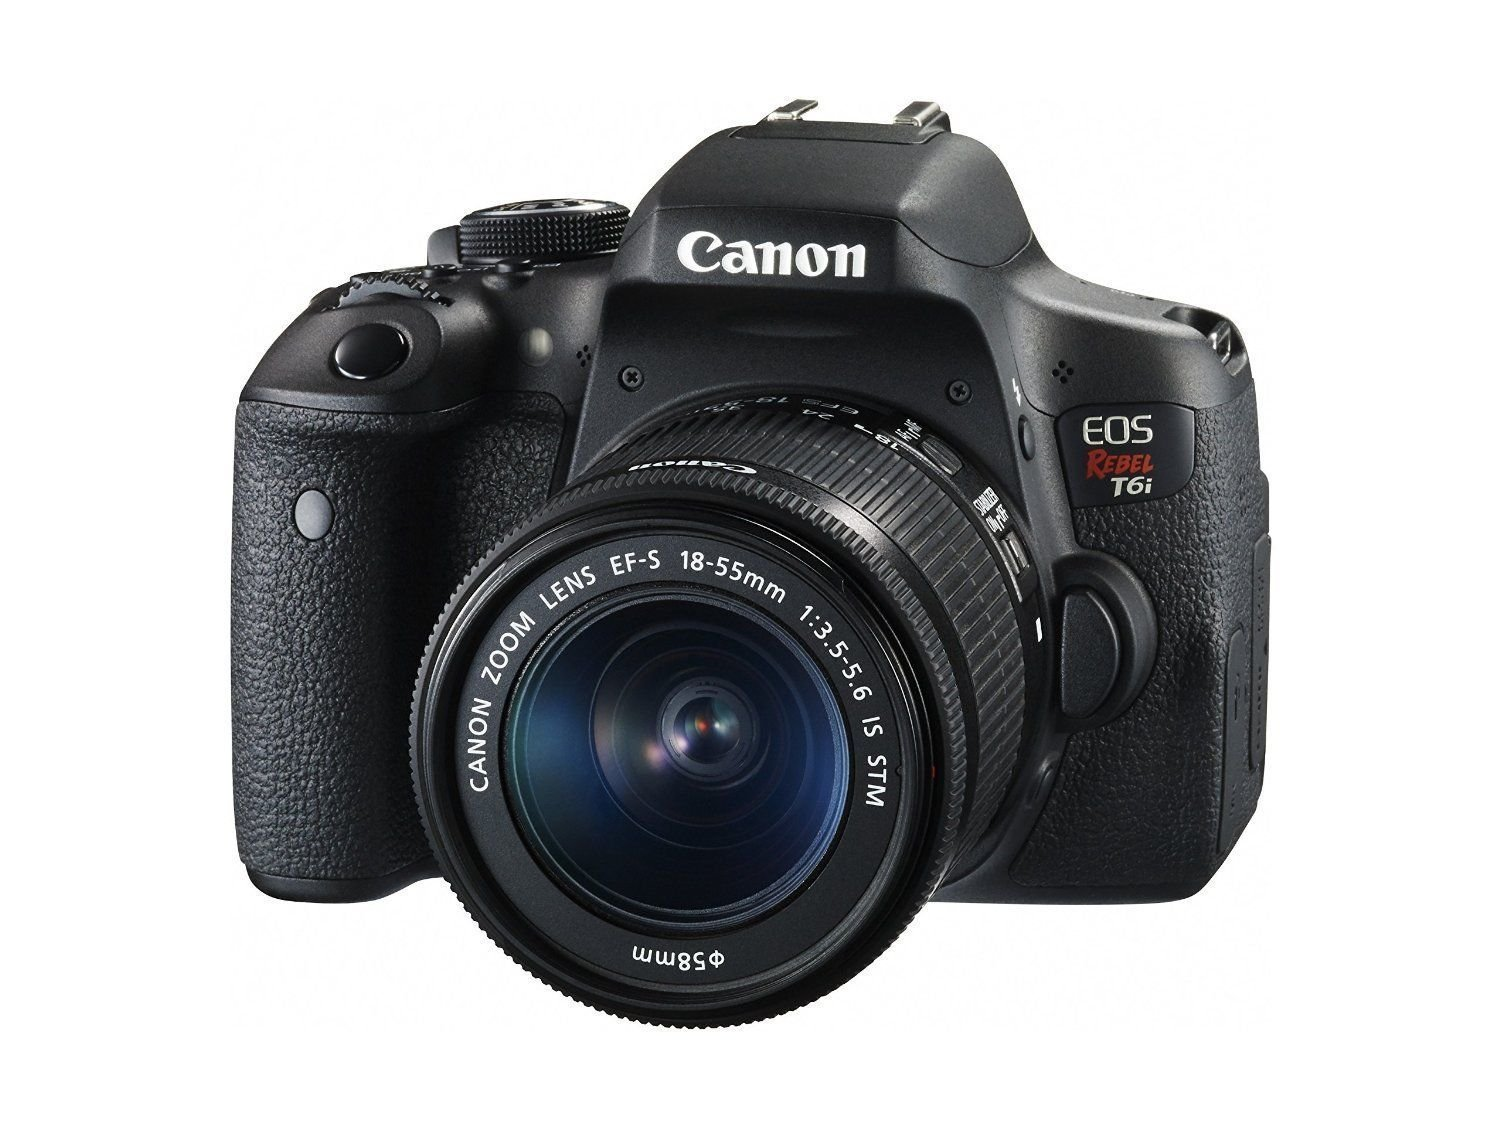 Amazon.com : Canon EOS Rebel T6i Digital SLR EF-S 18-55mm IS STM Lens + Canon EF-S 55-250mm + Polaroid 58mm .43x Wide Angle & 2.2X Lenses + Lexar 32GB 633x + Tripods + Polaroid 58mm Filter + Polaroid Accessory Kit